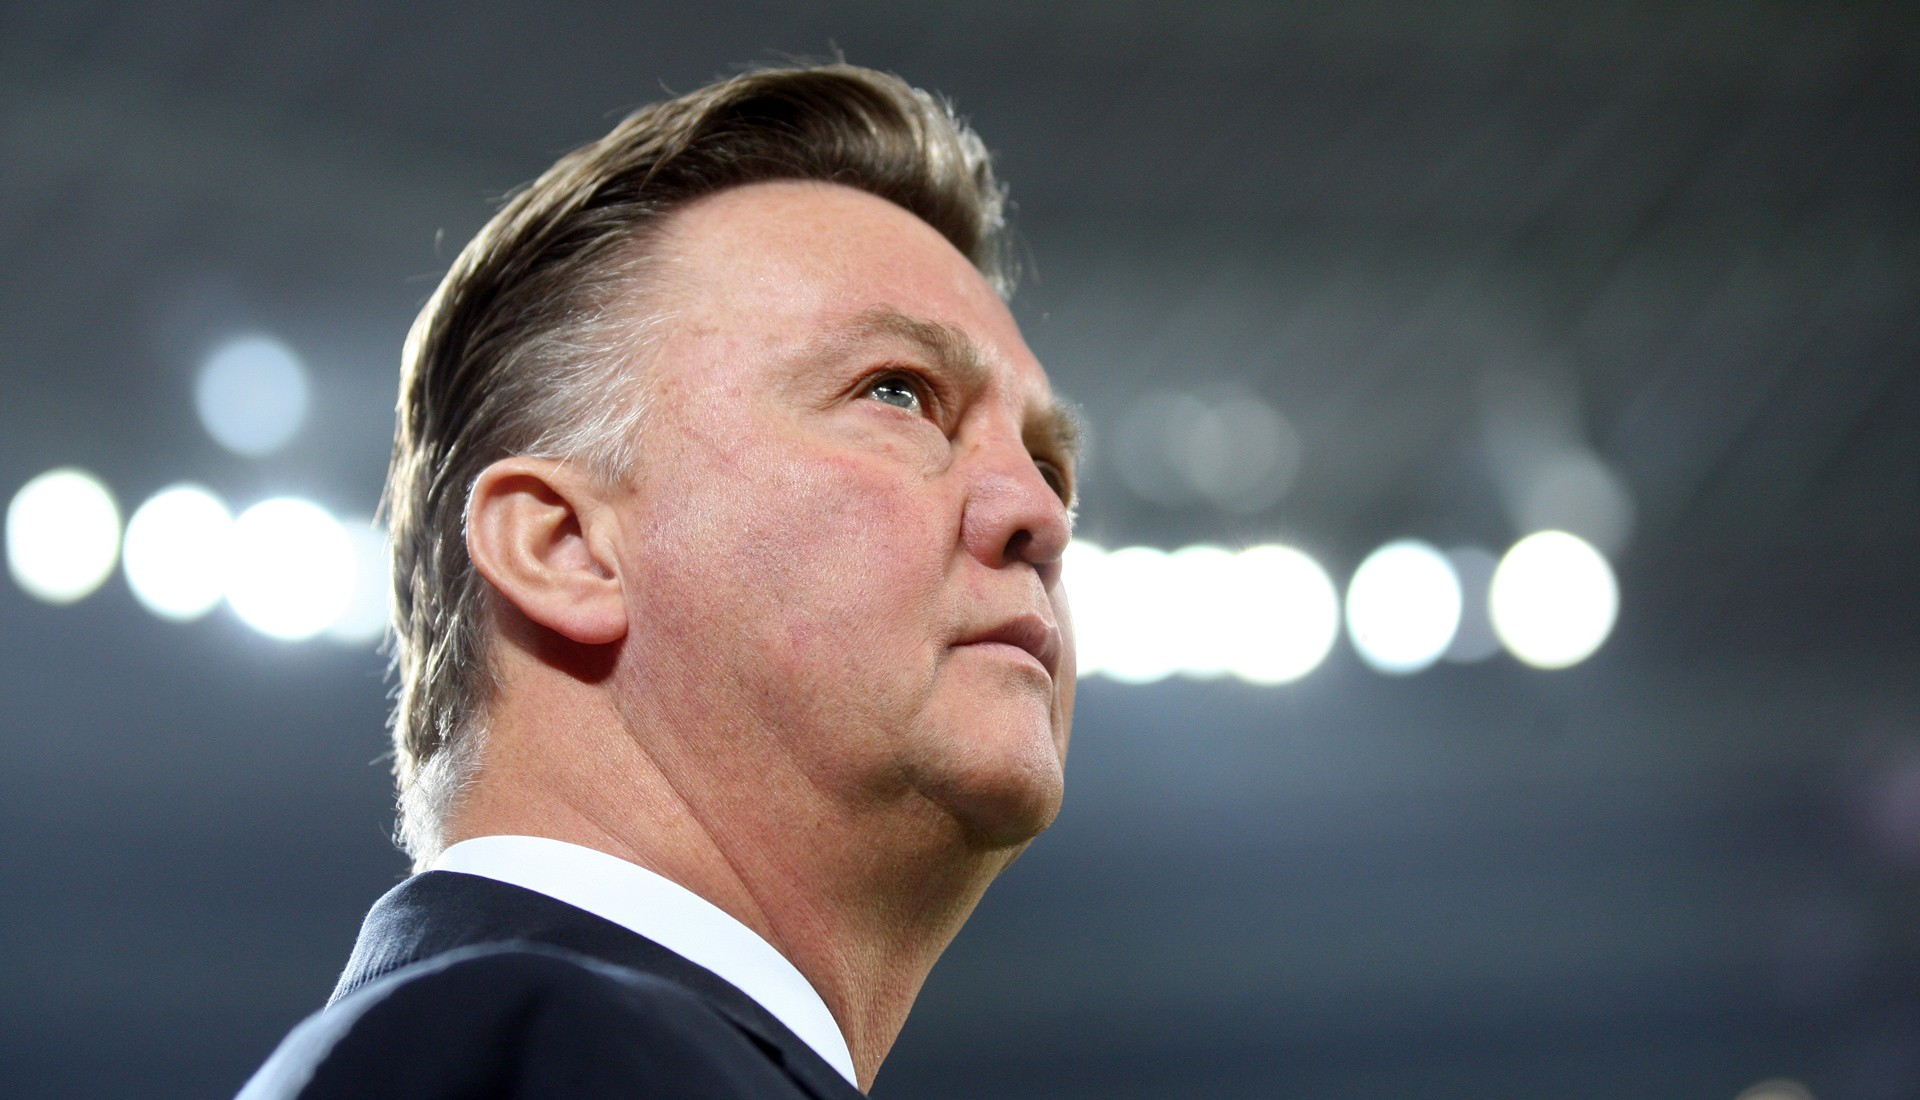 Louis van Gaal during the World Cup in Brazil. Photo: Stefan Matzke/Hollandse Hoogte